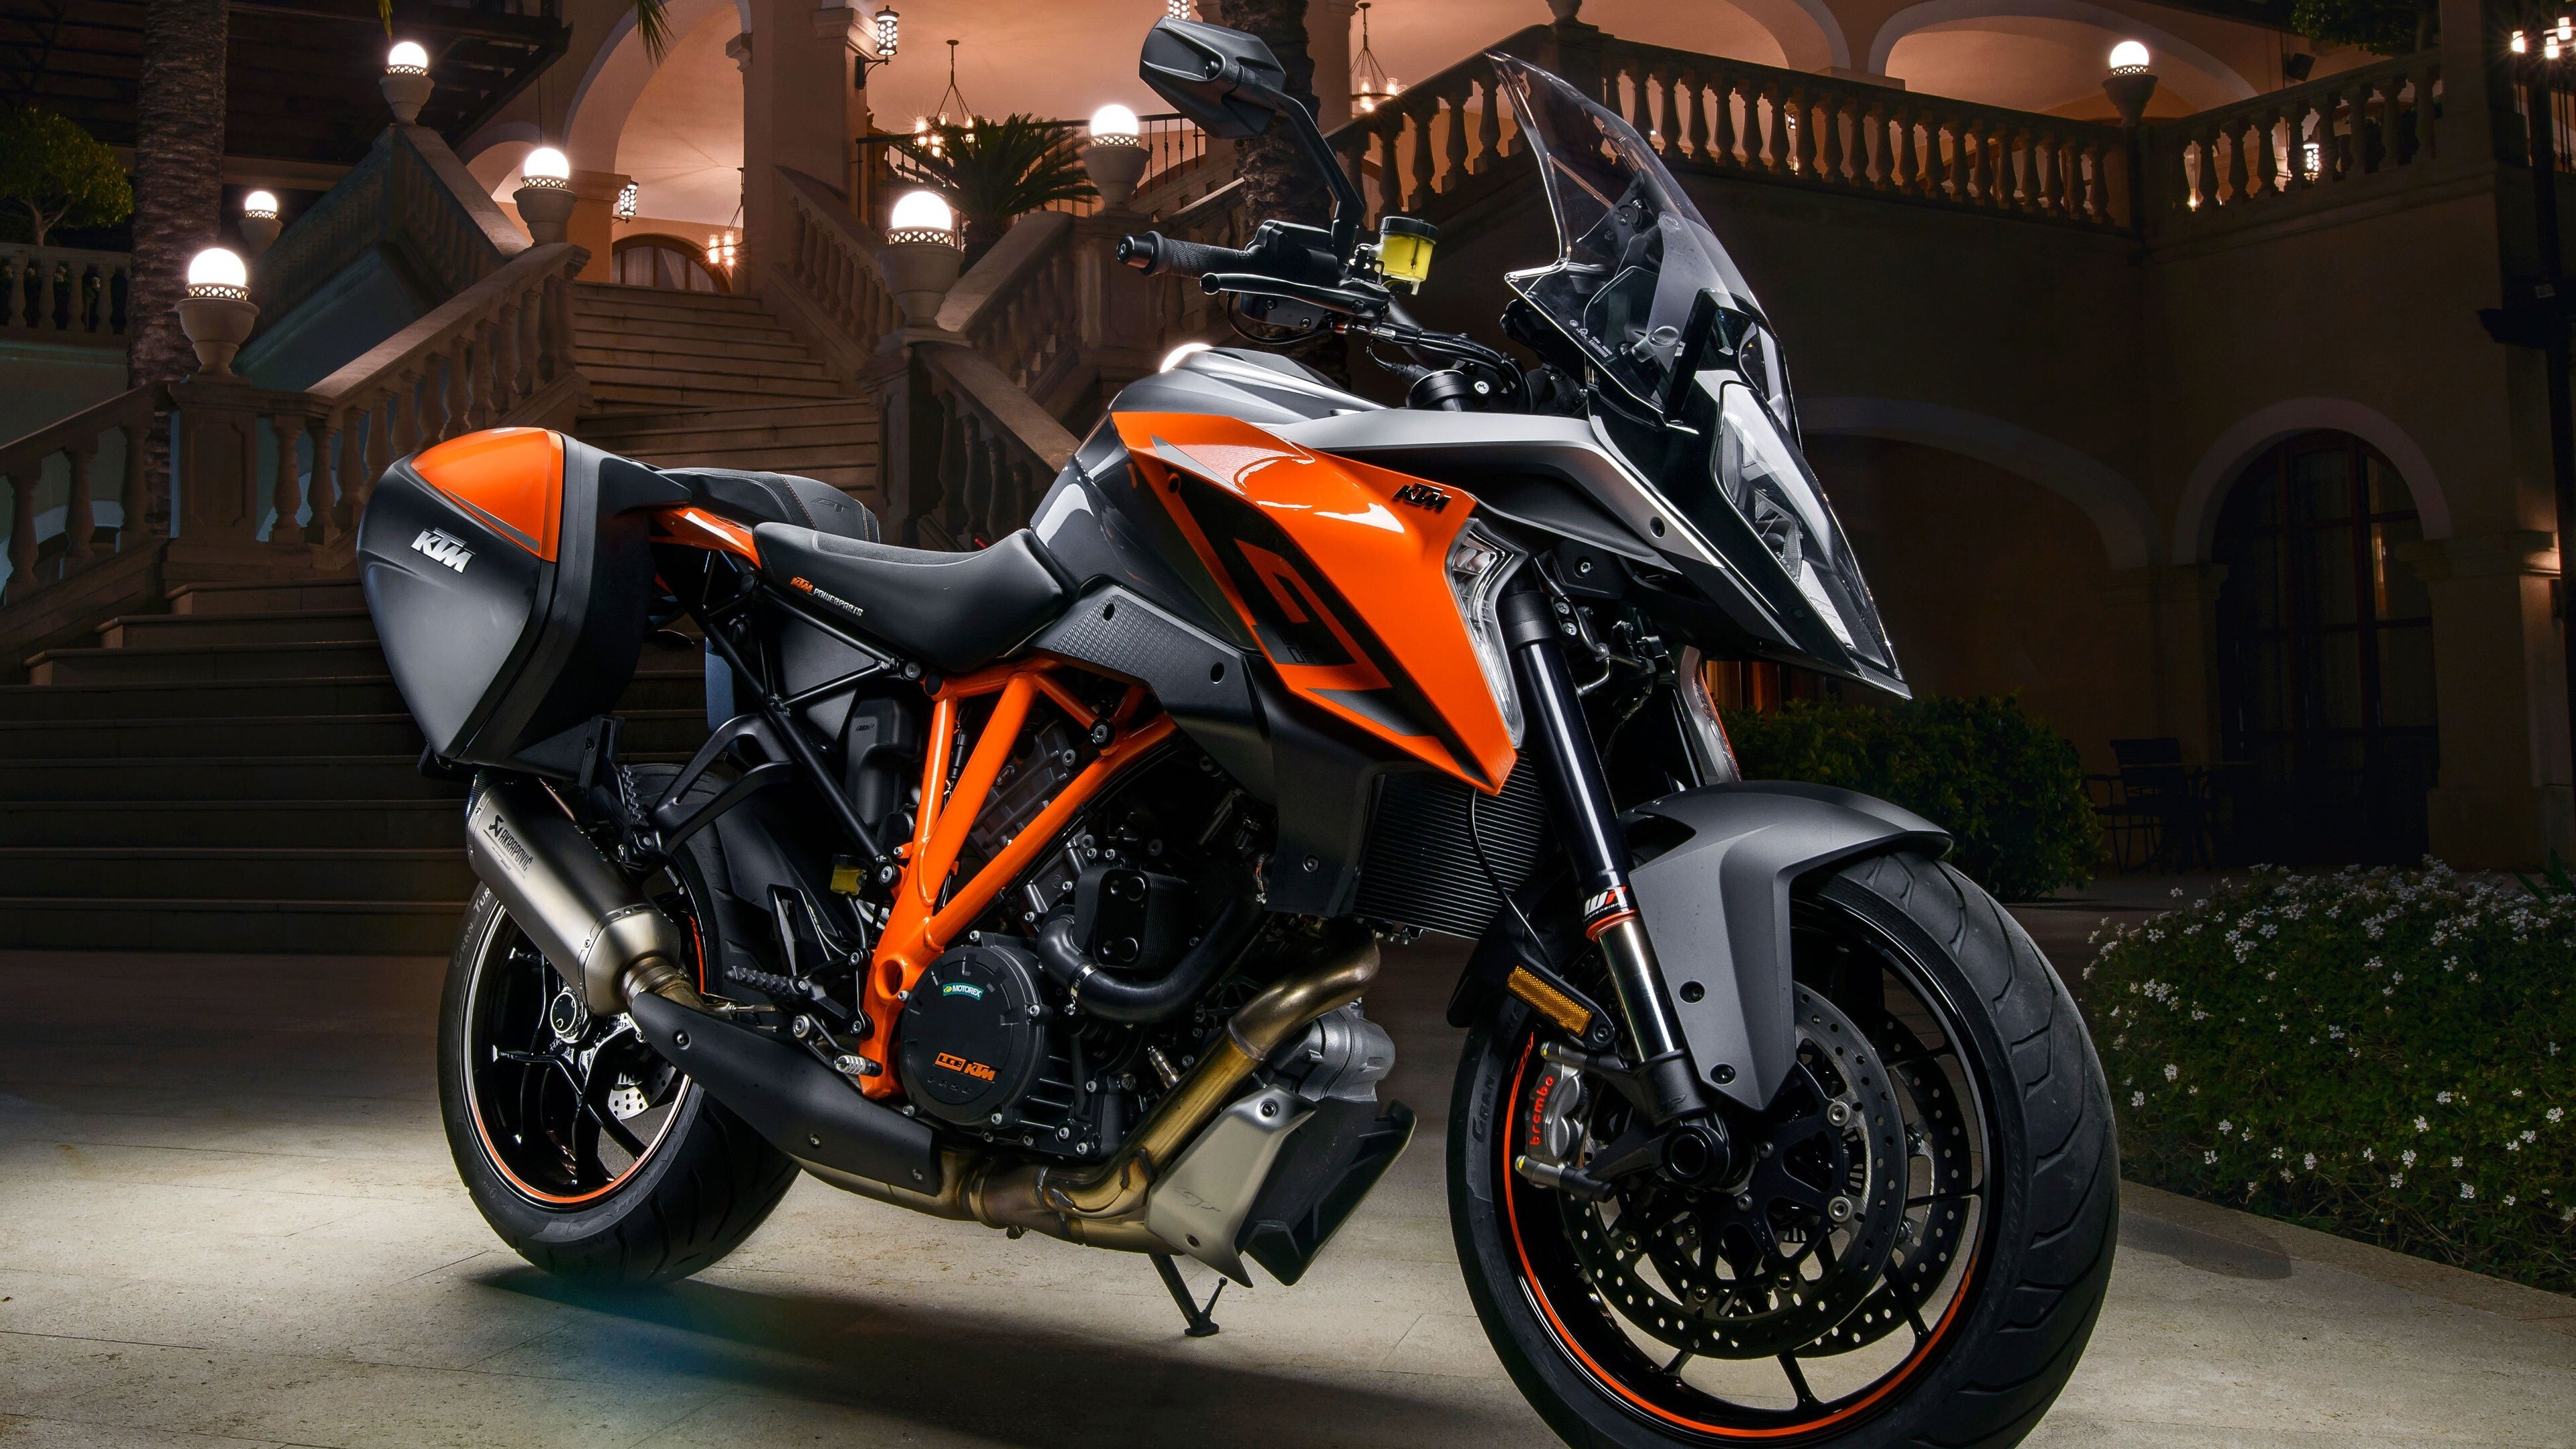 2020 Motorcycle Ktm 1290 Super Duke Gt 4k Wallpaper Hd